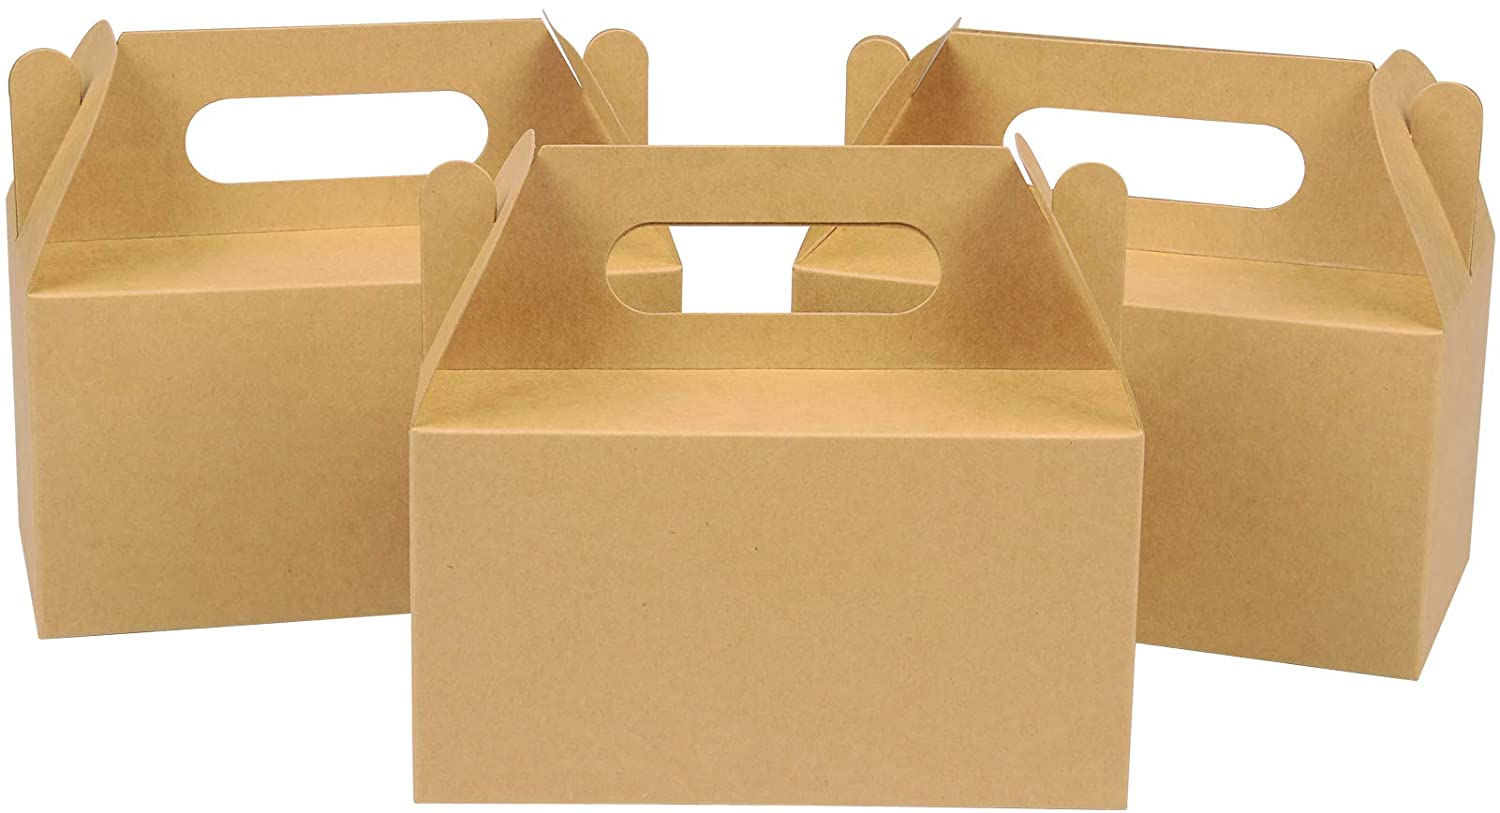 LOKQING 30 Pack Gable Boxes Goodie Boxes Small Treat Box with Handles Gift Boxes for Kids 7x4x4 inch(Brown)